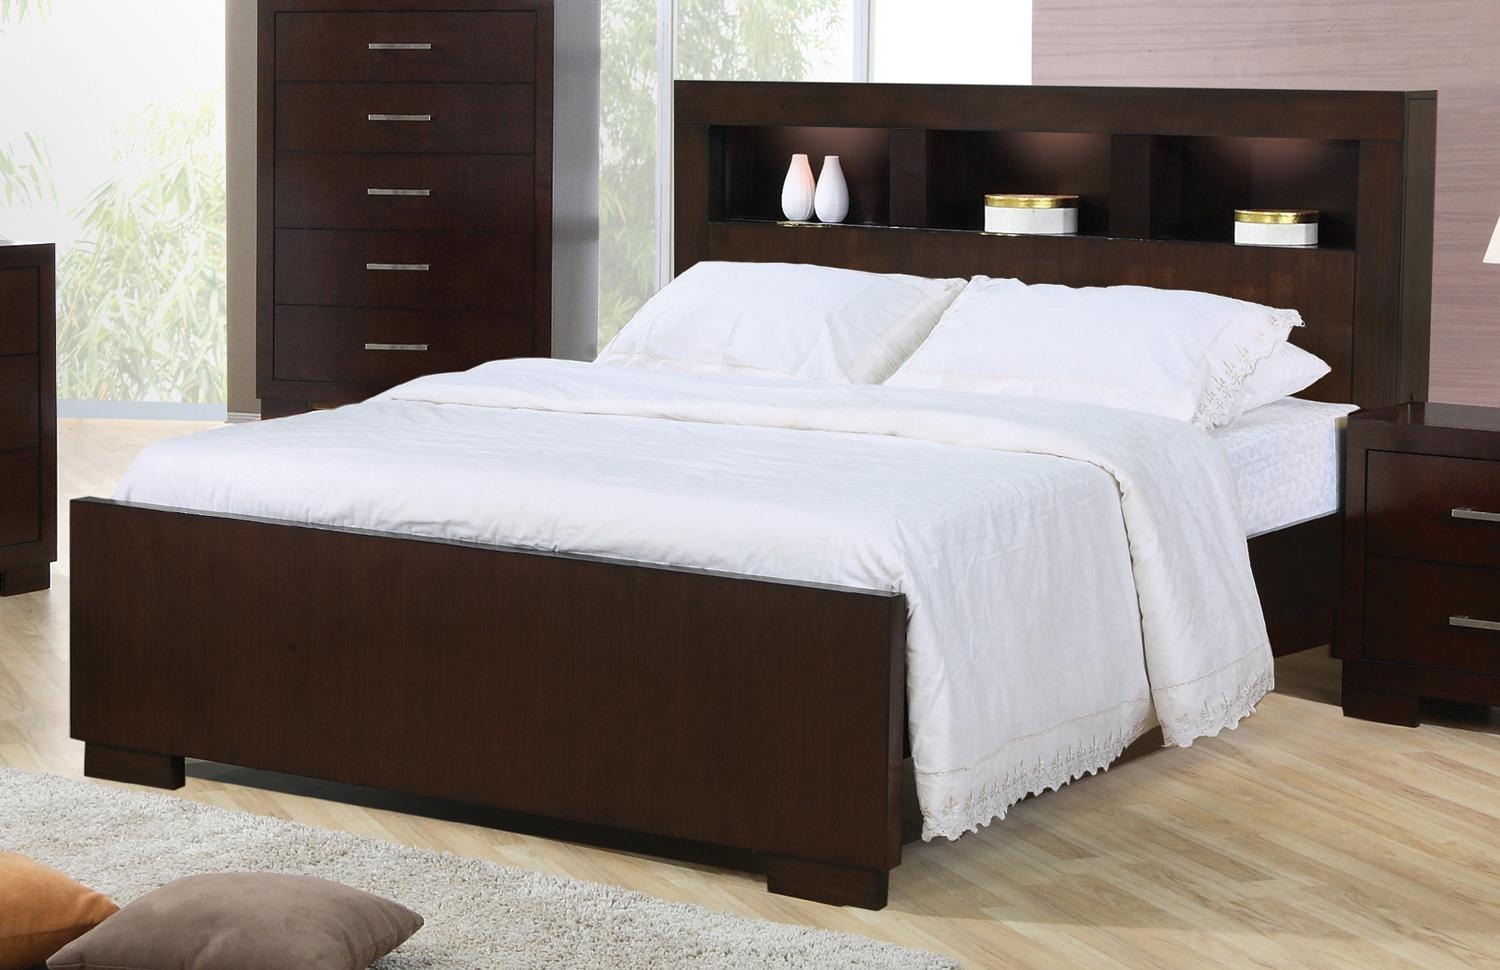 Jessica California King Contemporary Bed With Storage Headboard